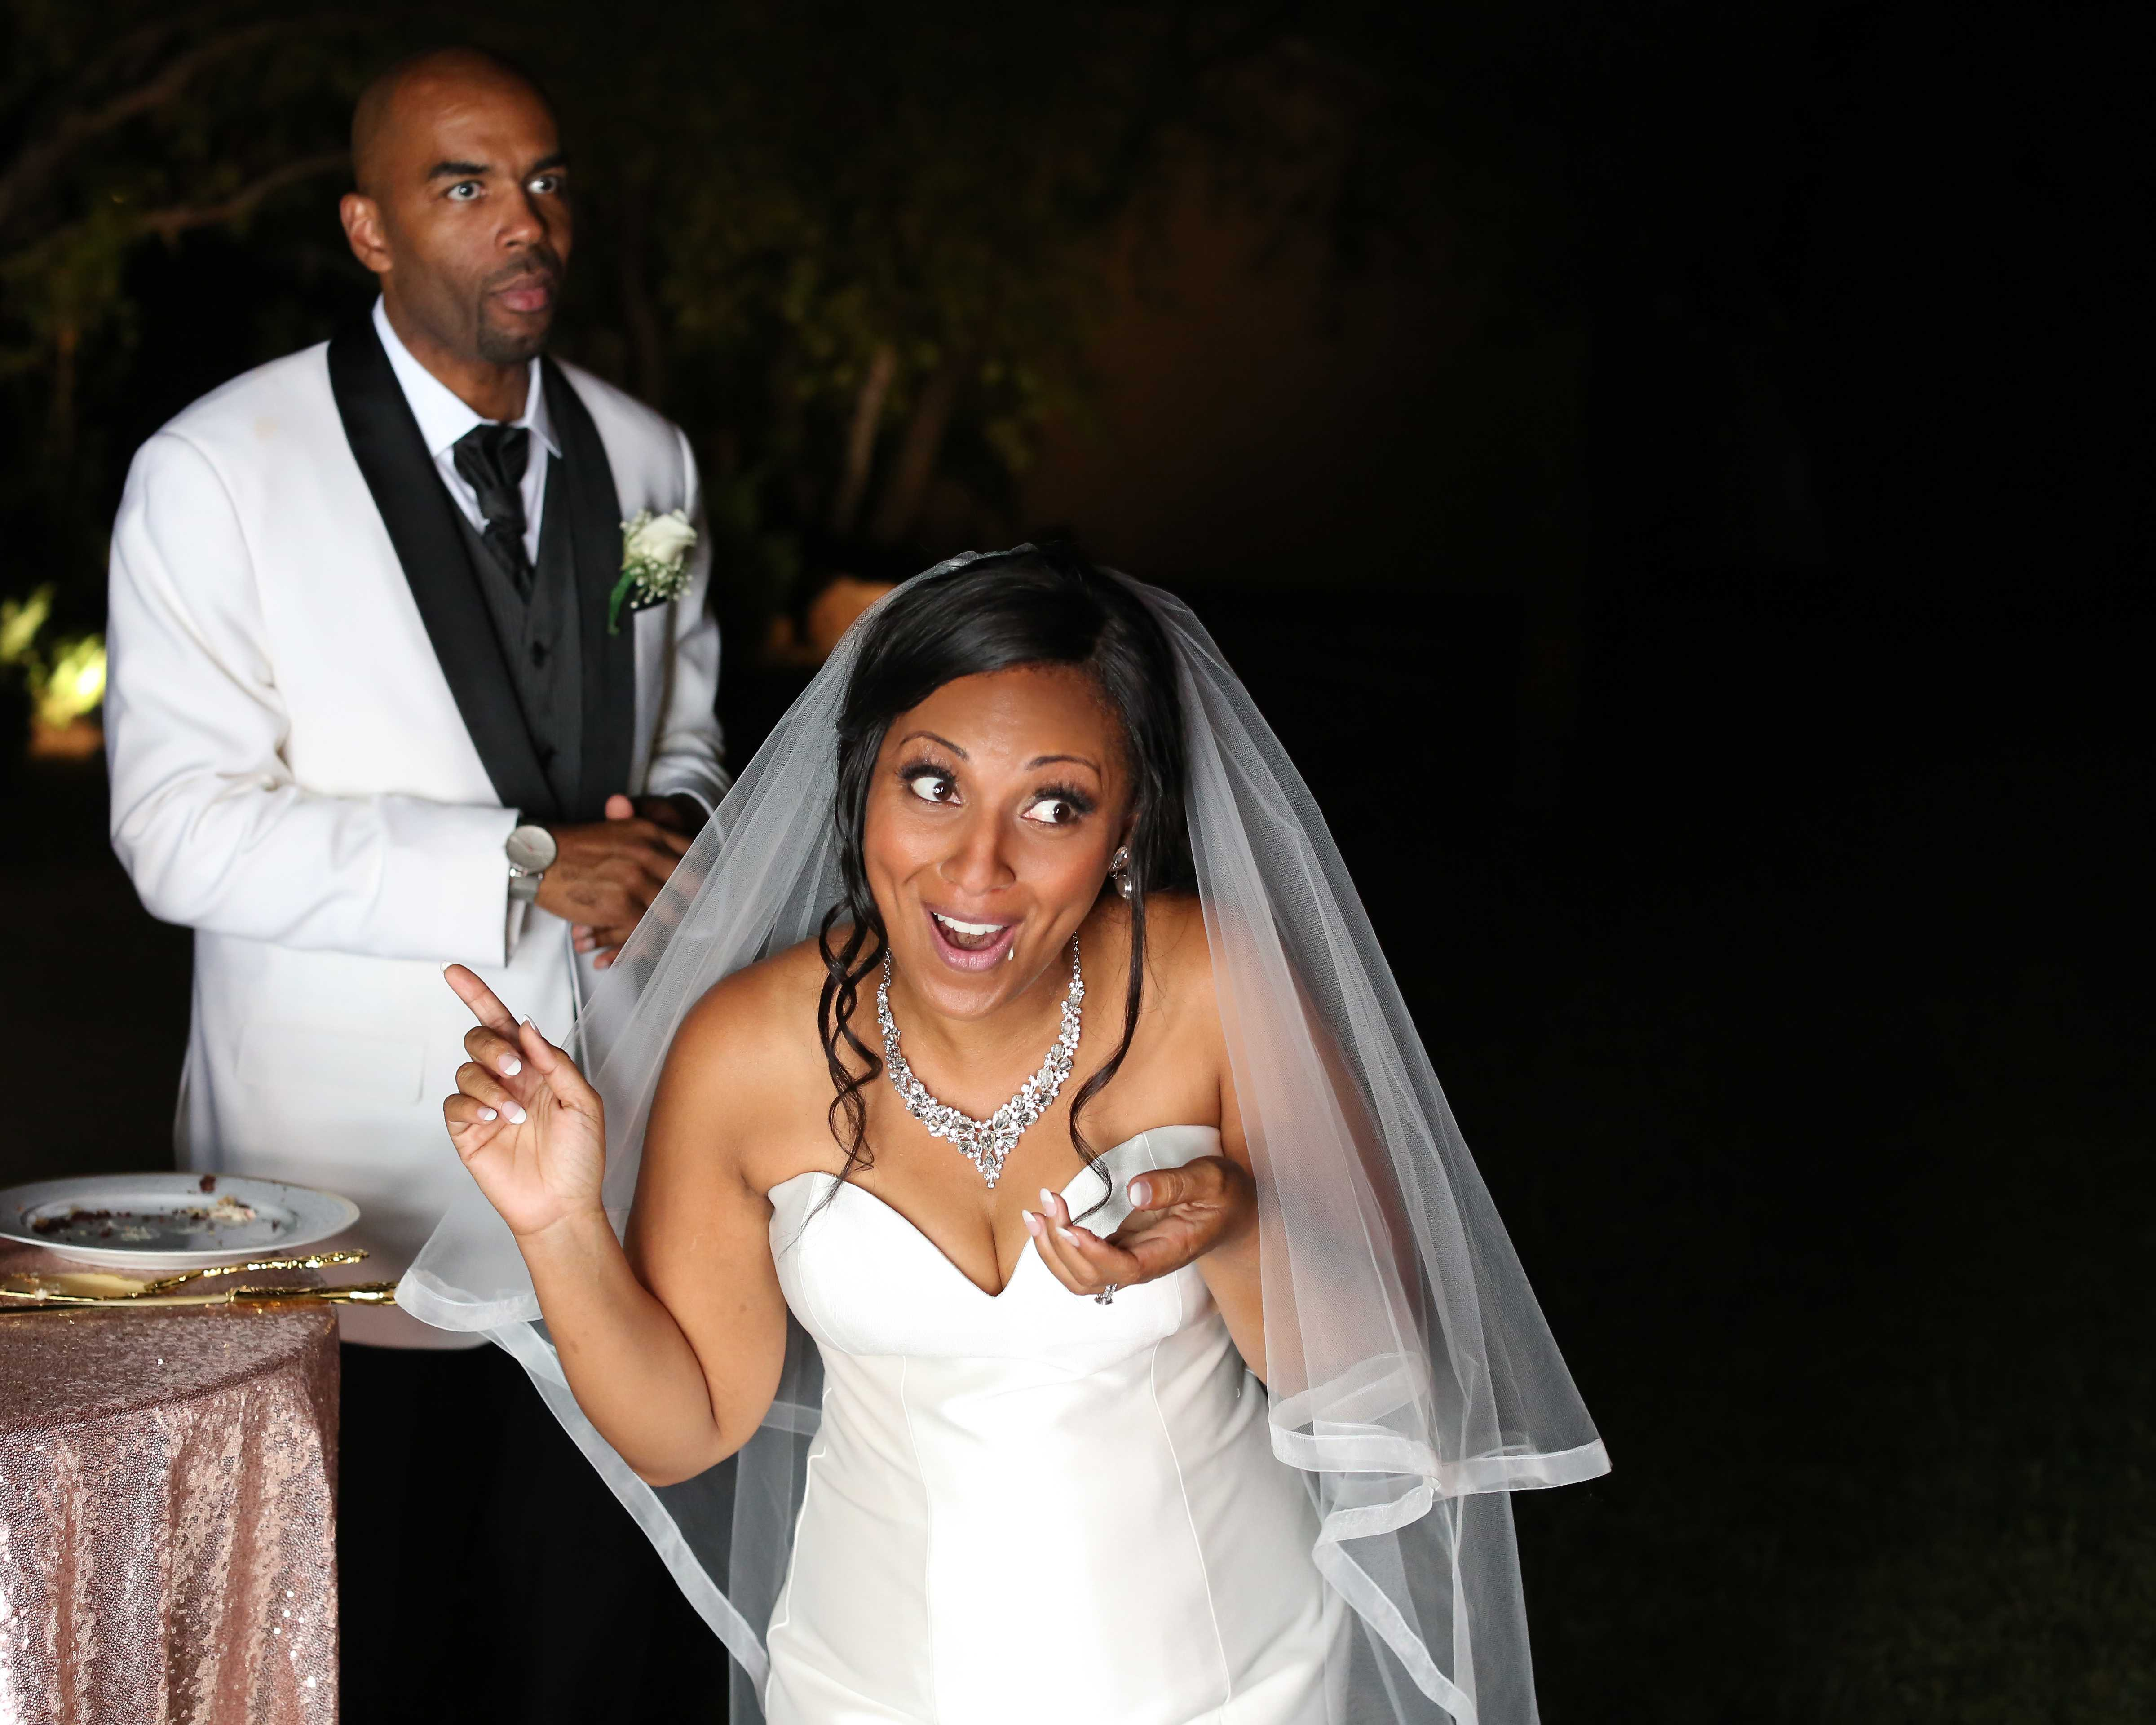 Wedding photography and videography in Las Vegas